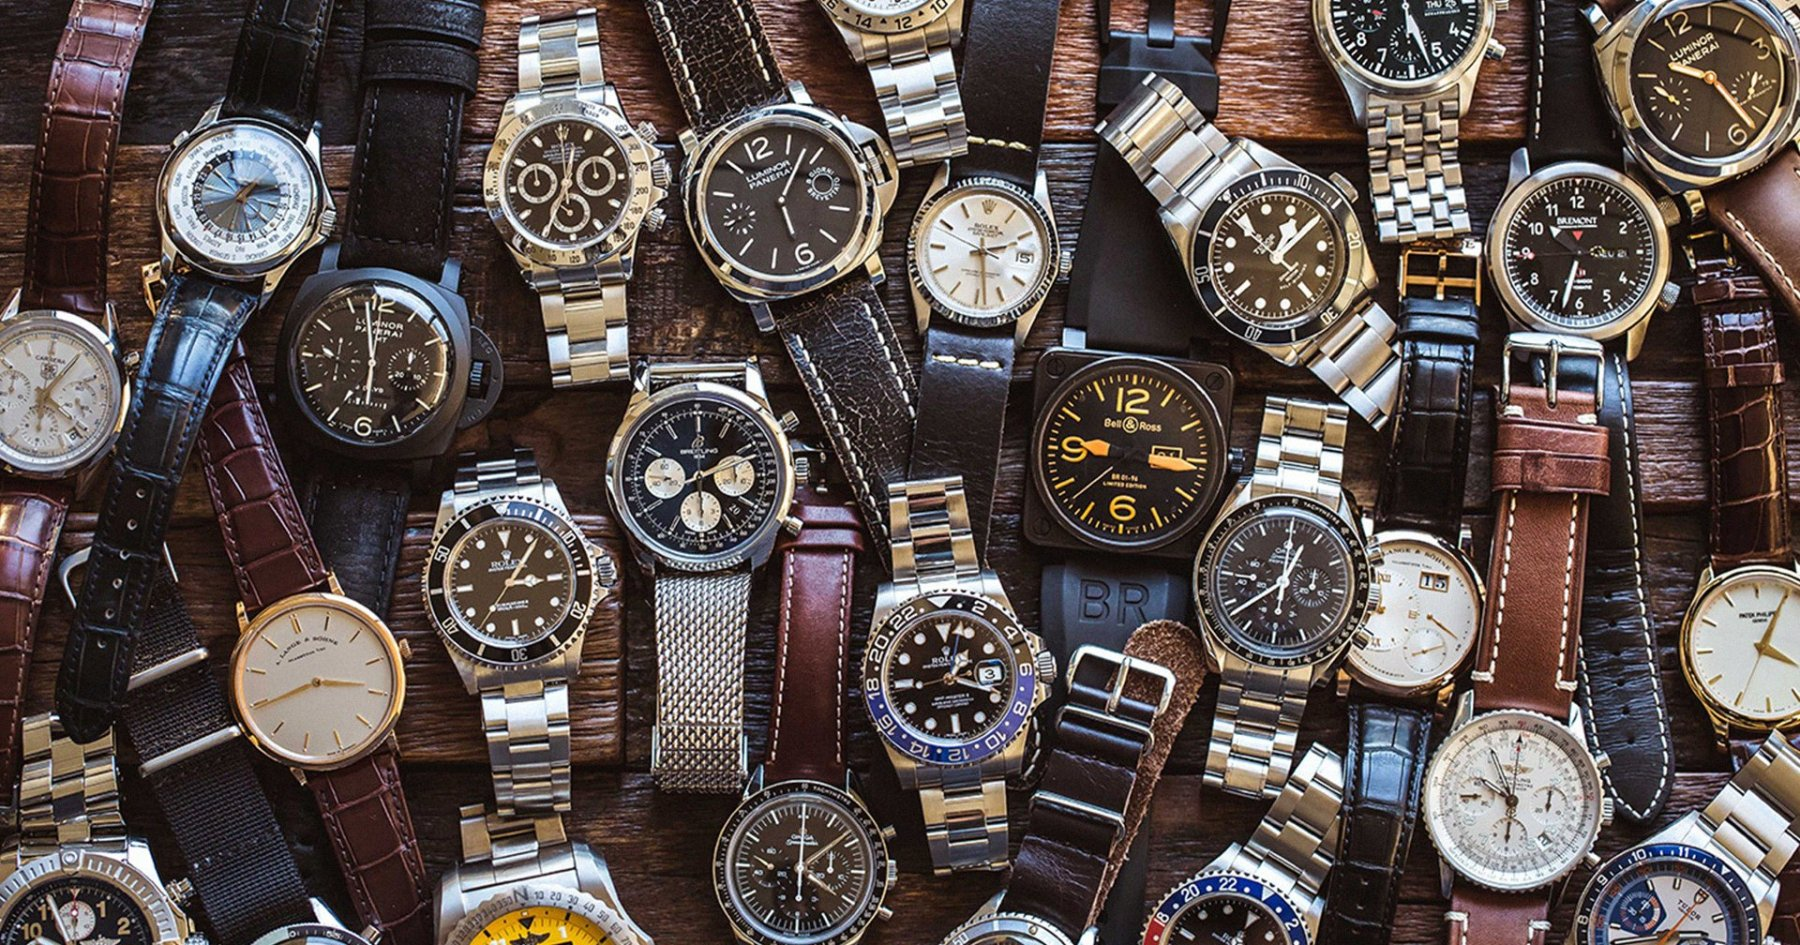 1997d9a59fea92 A Cheat Sheet to the 8 Most Iconic Men s Watch Brands